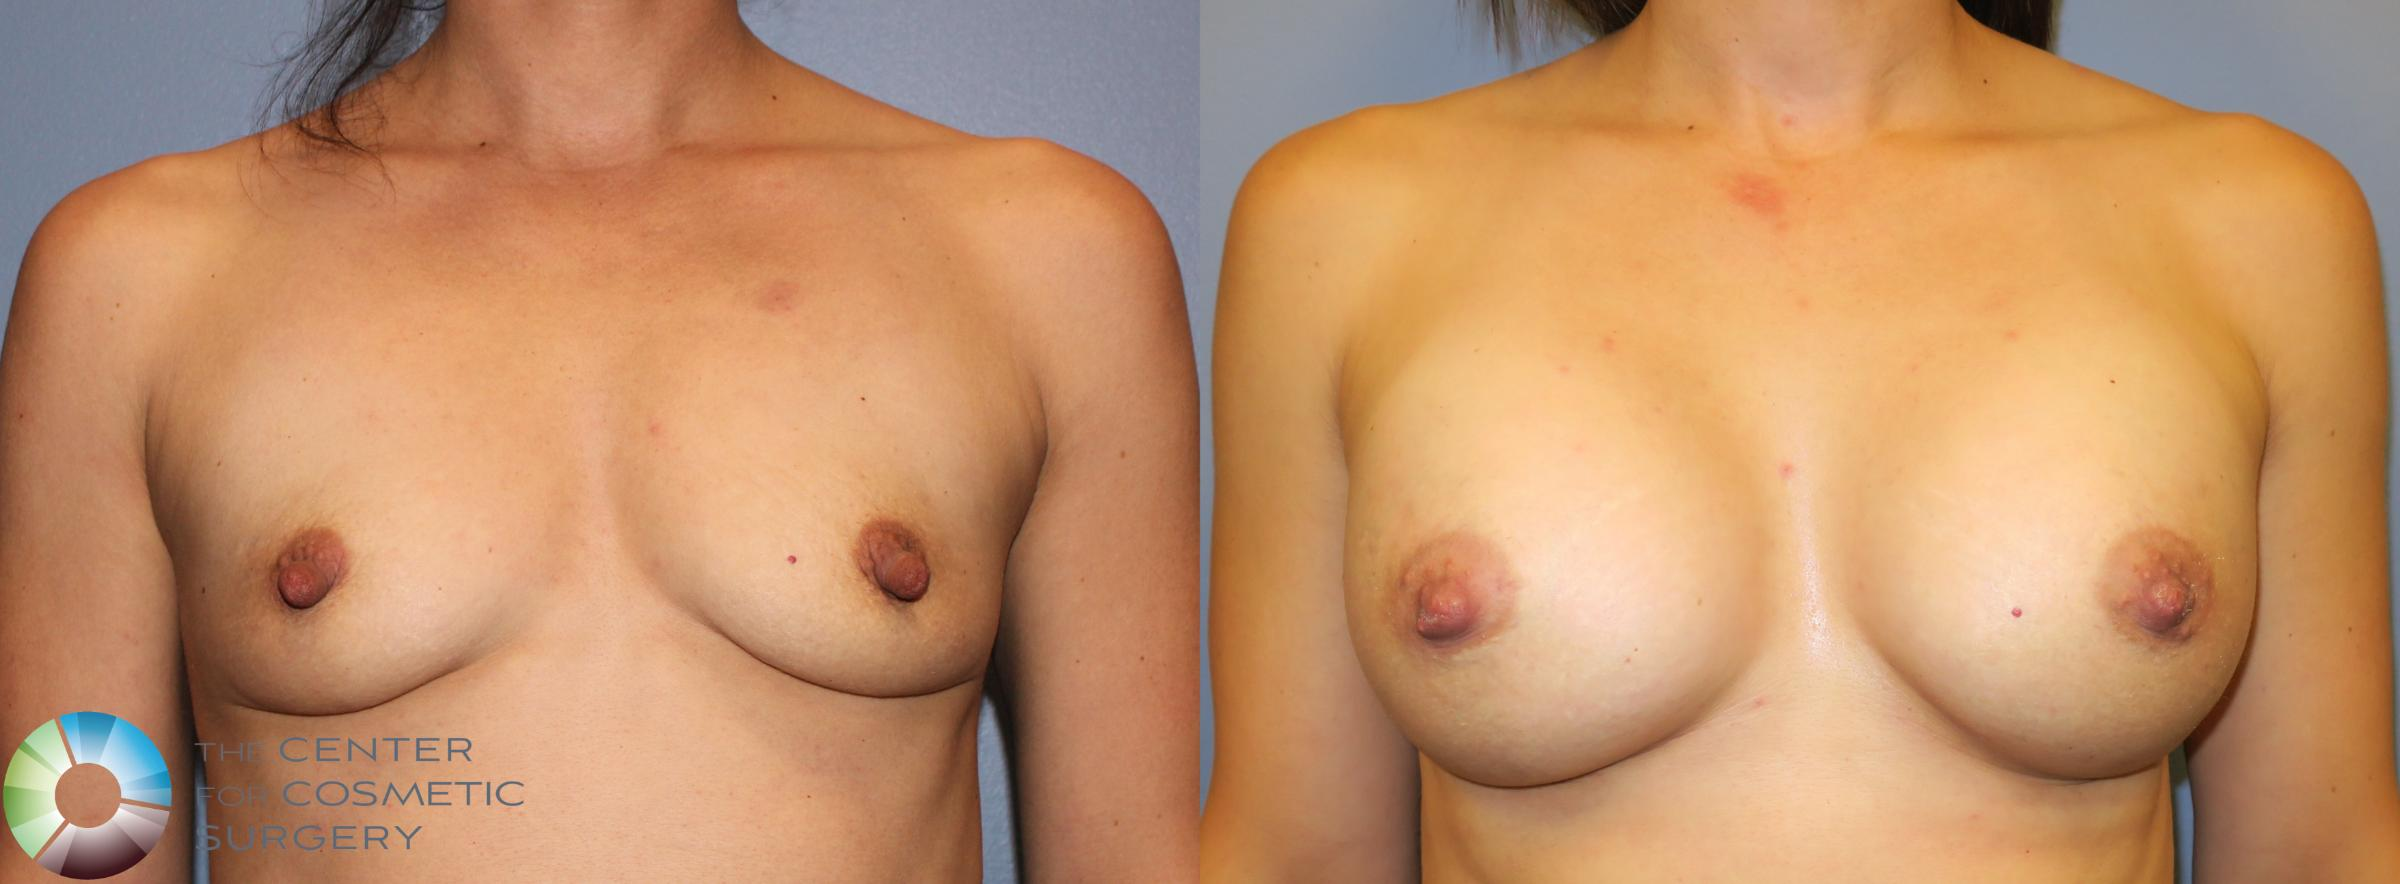 Nipple Repair Case 911 Before & After View #1 | Golden, CO | The Center for Cosmetic Surgery